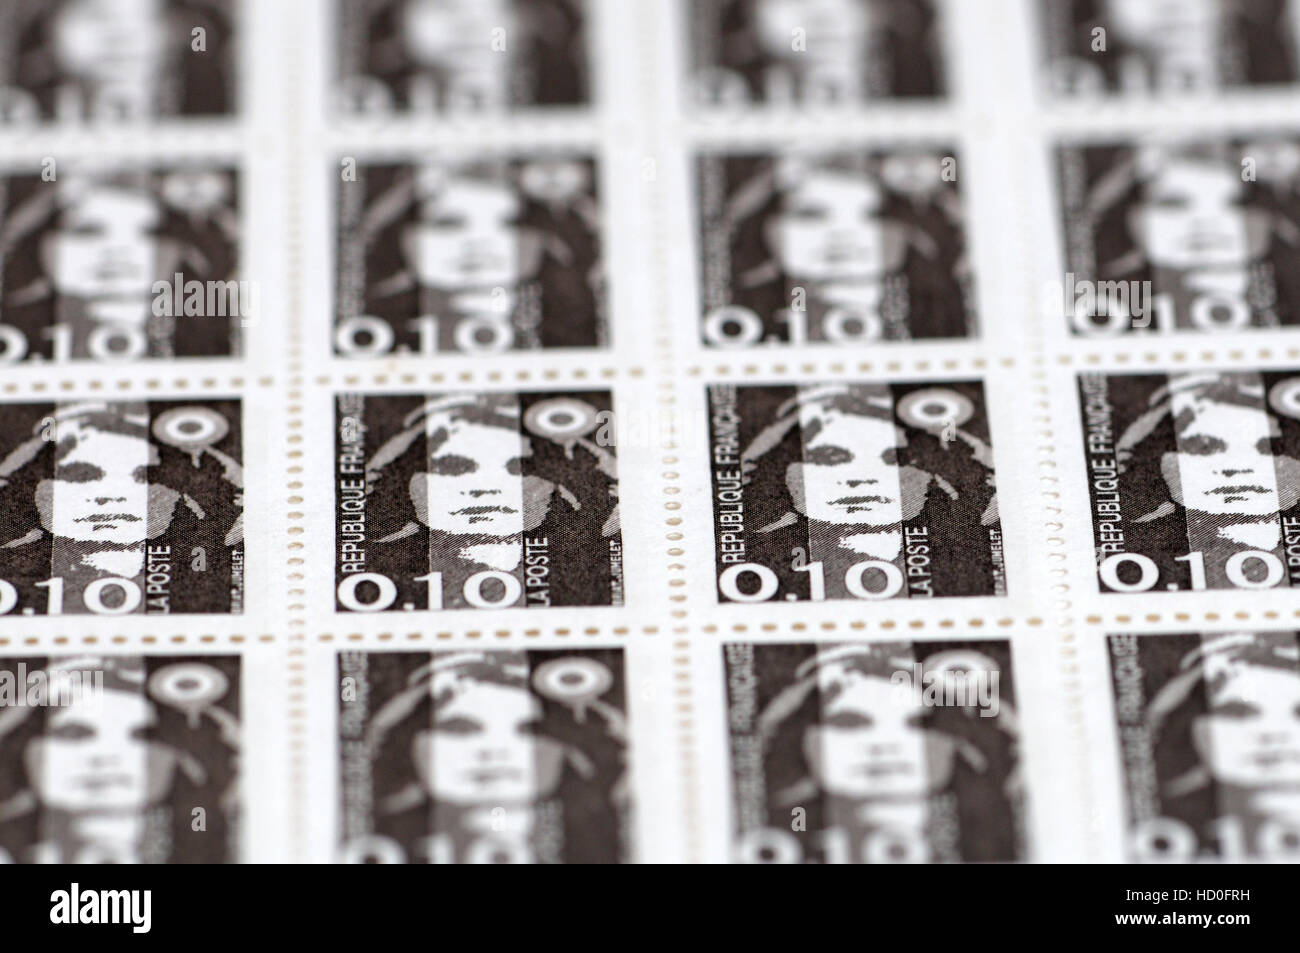 French postage stamps (1990) : 10c, Marianne de Briat Stock Photo